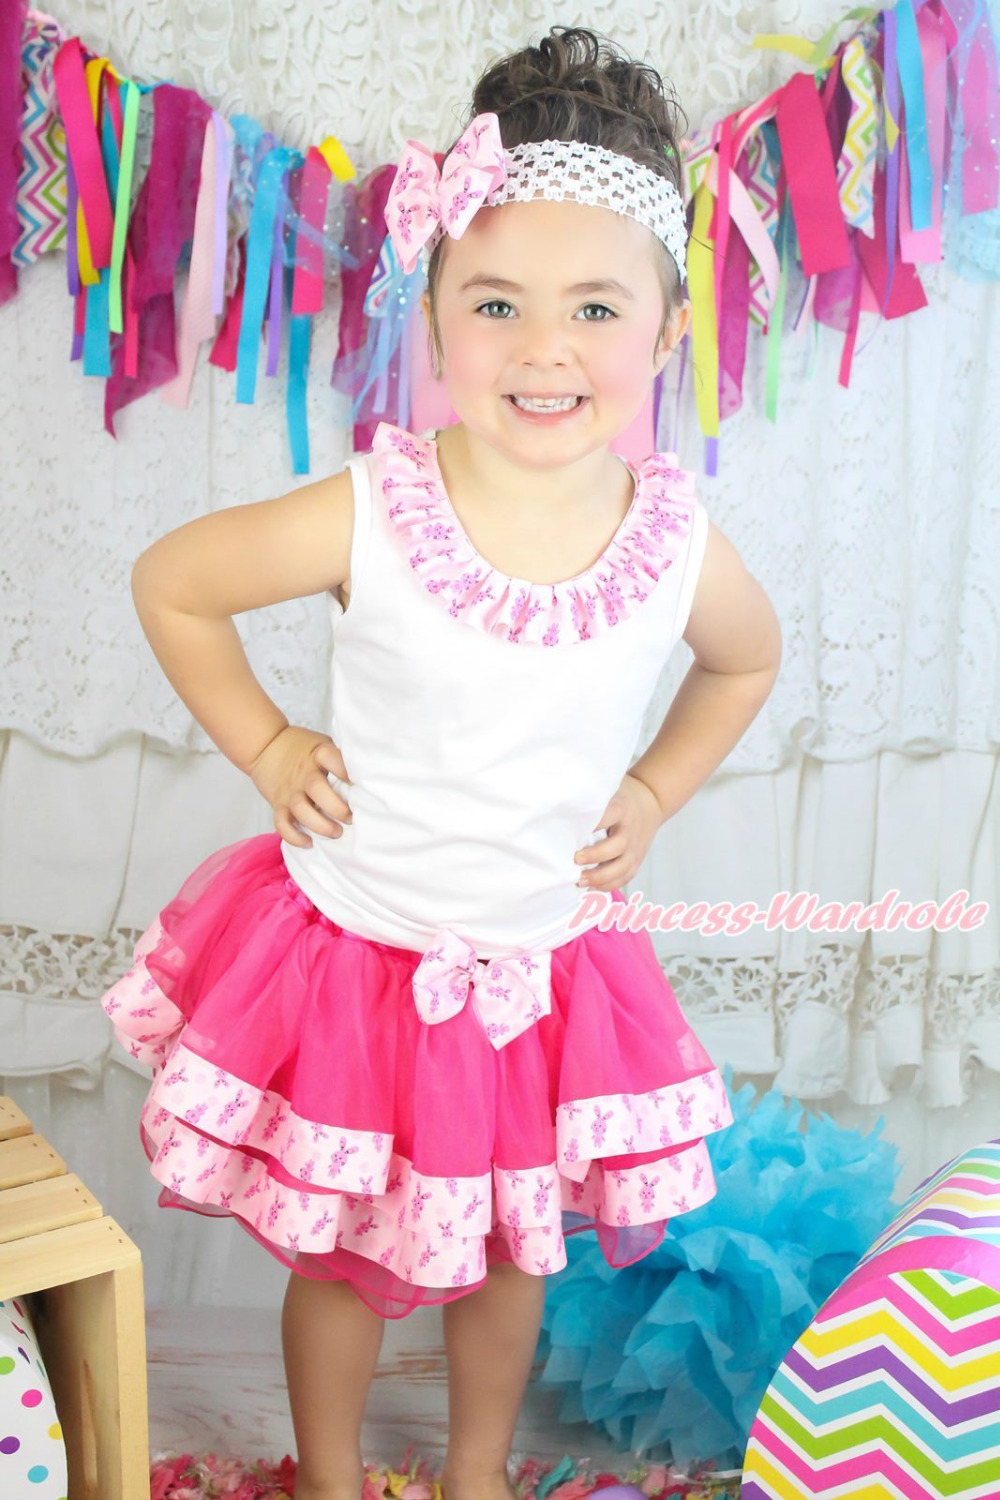 Easter Lacing White Top Hot Pink Bunny Satin Trim Pettiskirt Girl Outfit NB-8Y MAPSA0604 hot pink top shirt camouflage lacing satin trim girl pettiskirt outfit set nb 8y mapsa0642